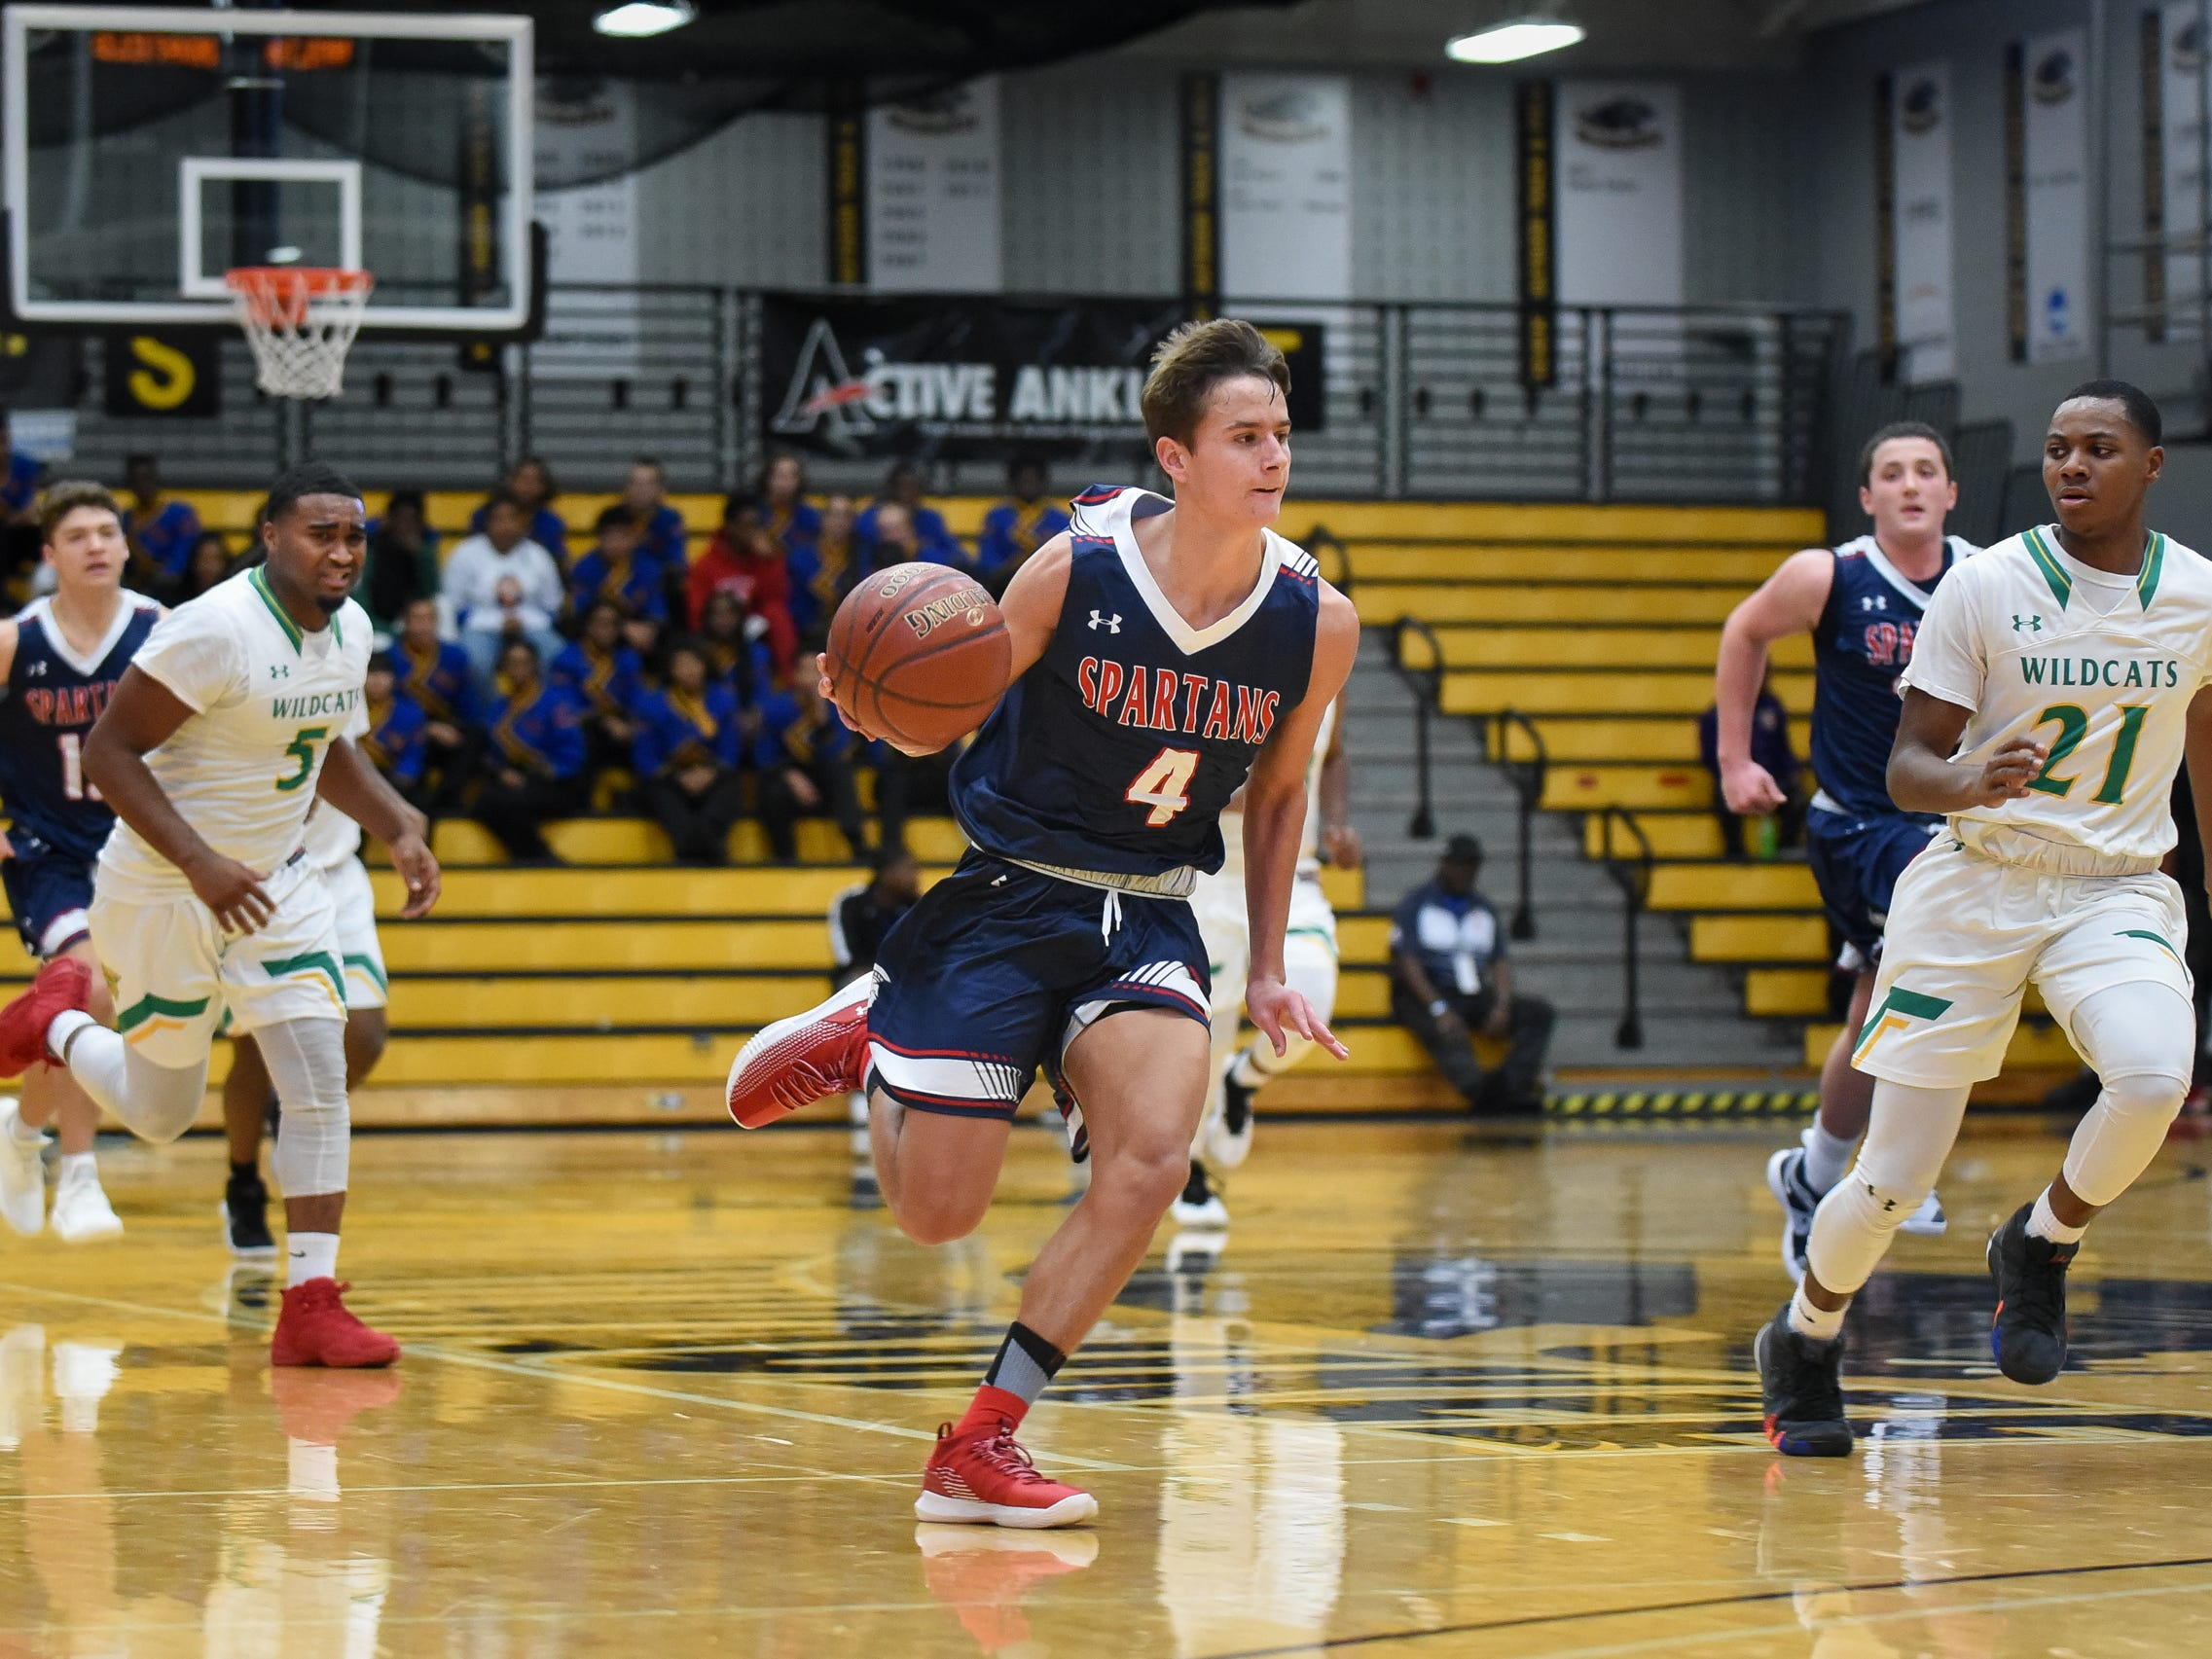 Brookfield East sophomore guard Hayden Doyle brings the ball up court against Milwaukee Hamilton in the Fresh Coast Classic high school basketball showcase Saturday, November 24, 2018, at UW-Milwaukee's Klotsche Center.